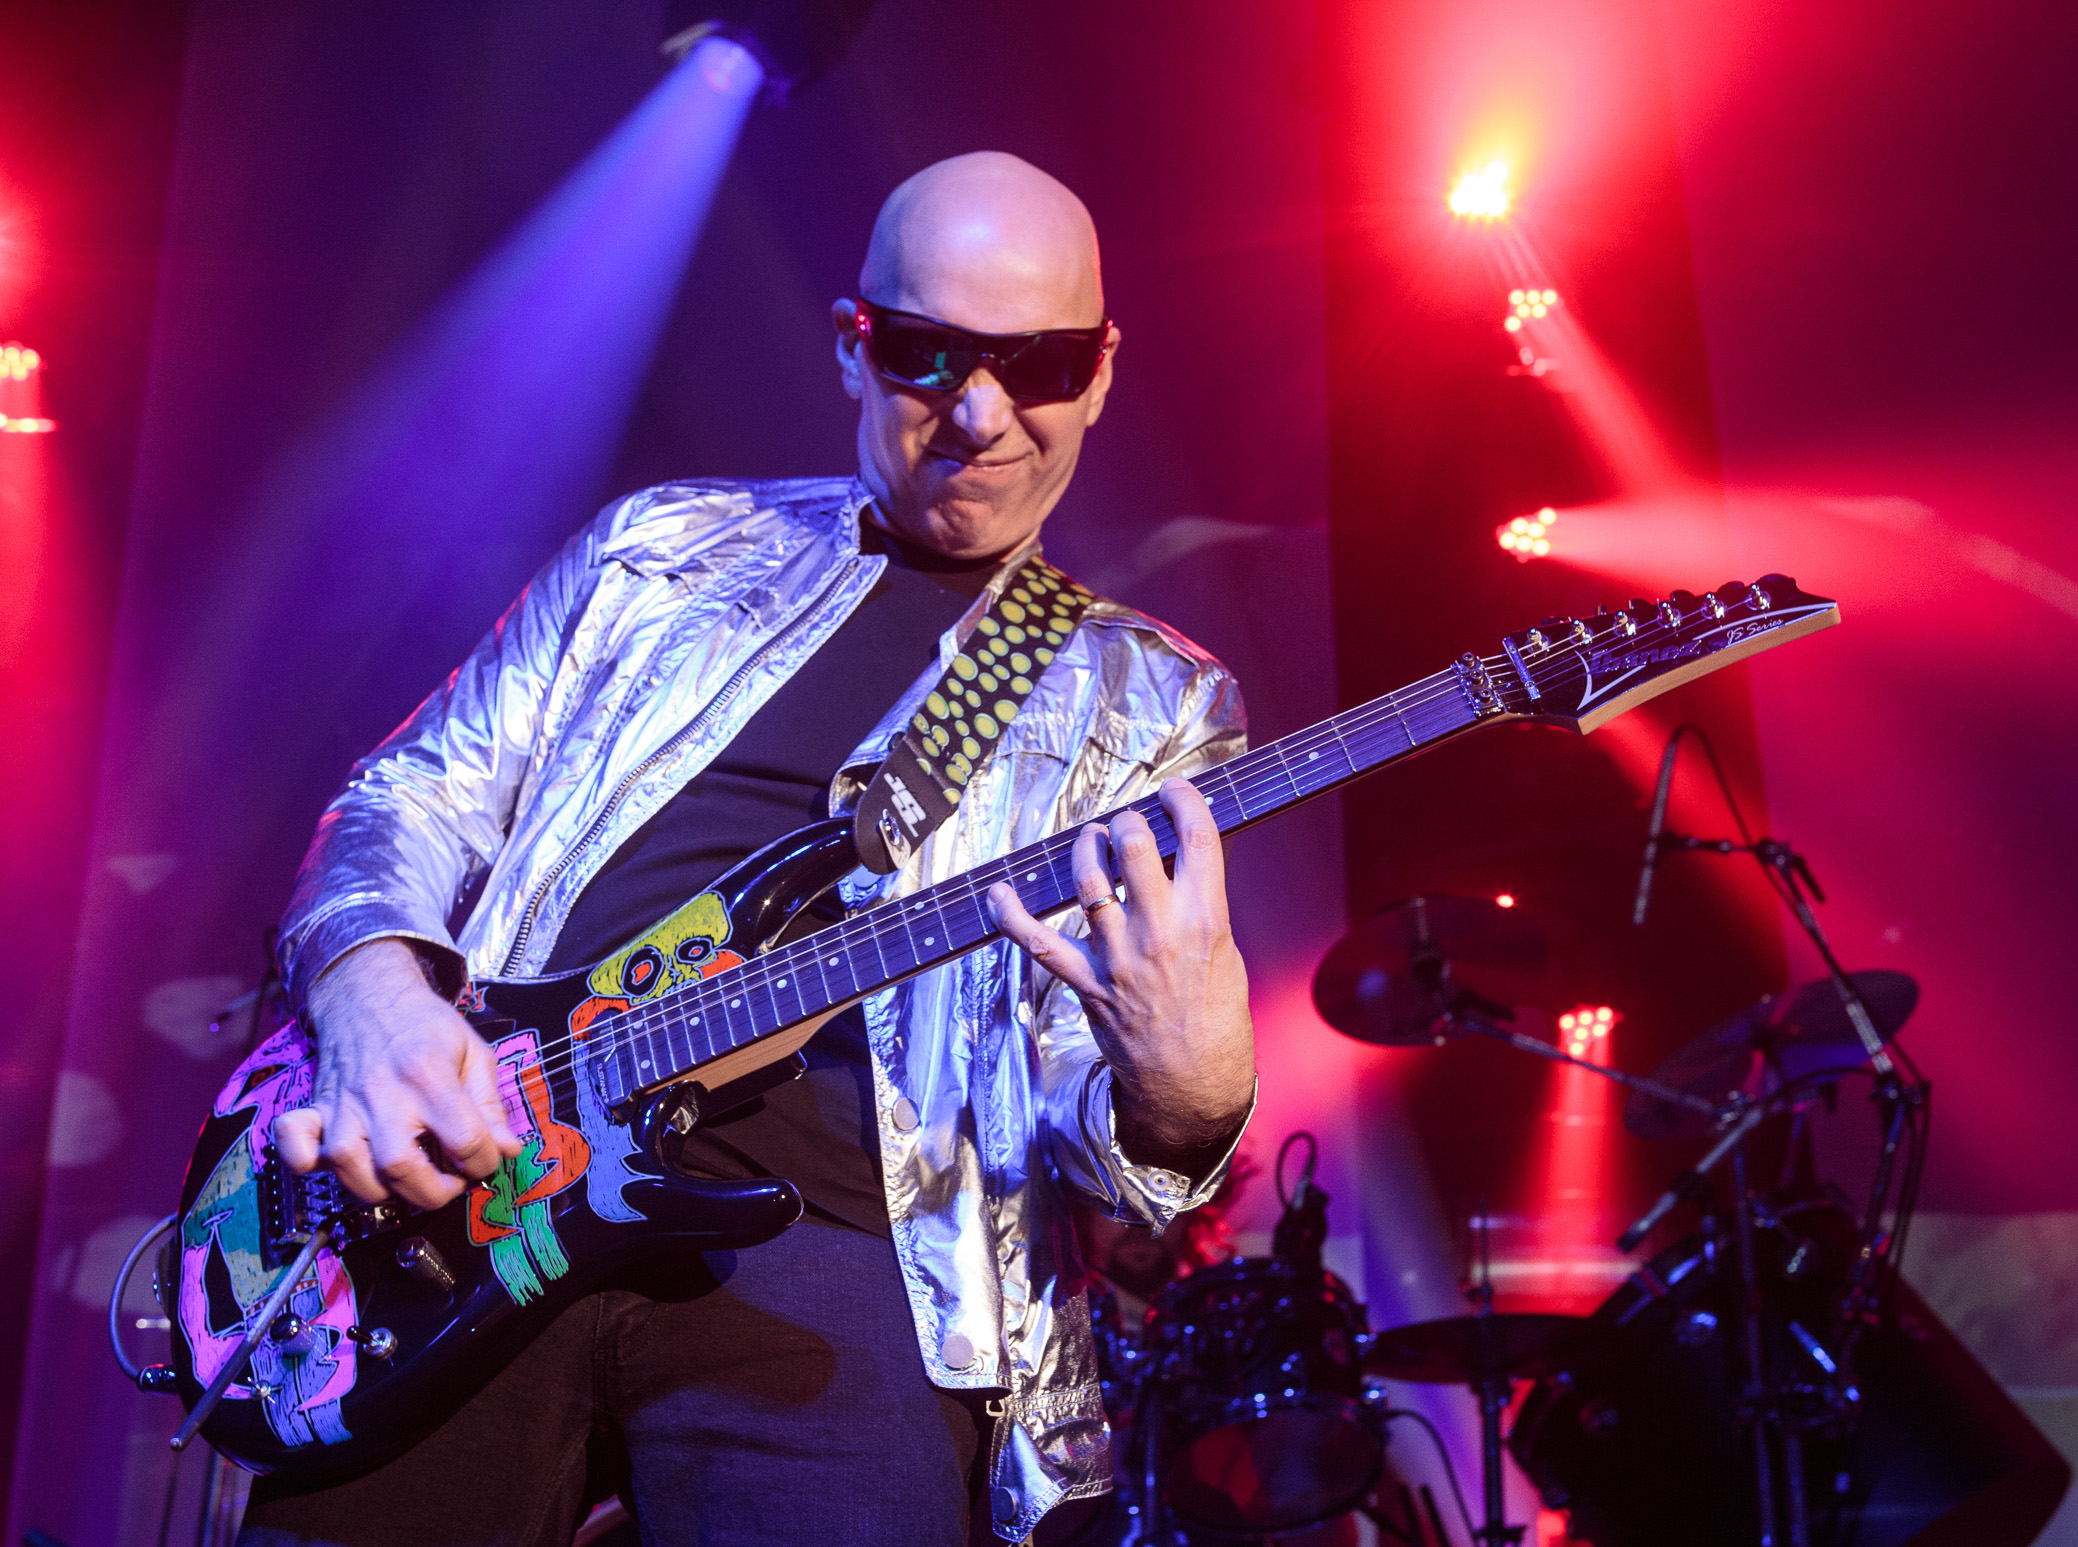 Joe Satriani performs at Iron City in Birmingham, Alabama on March 14th, 2016. (Photo by David A. Smith/DSmithScenes)